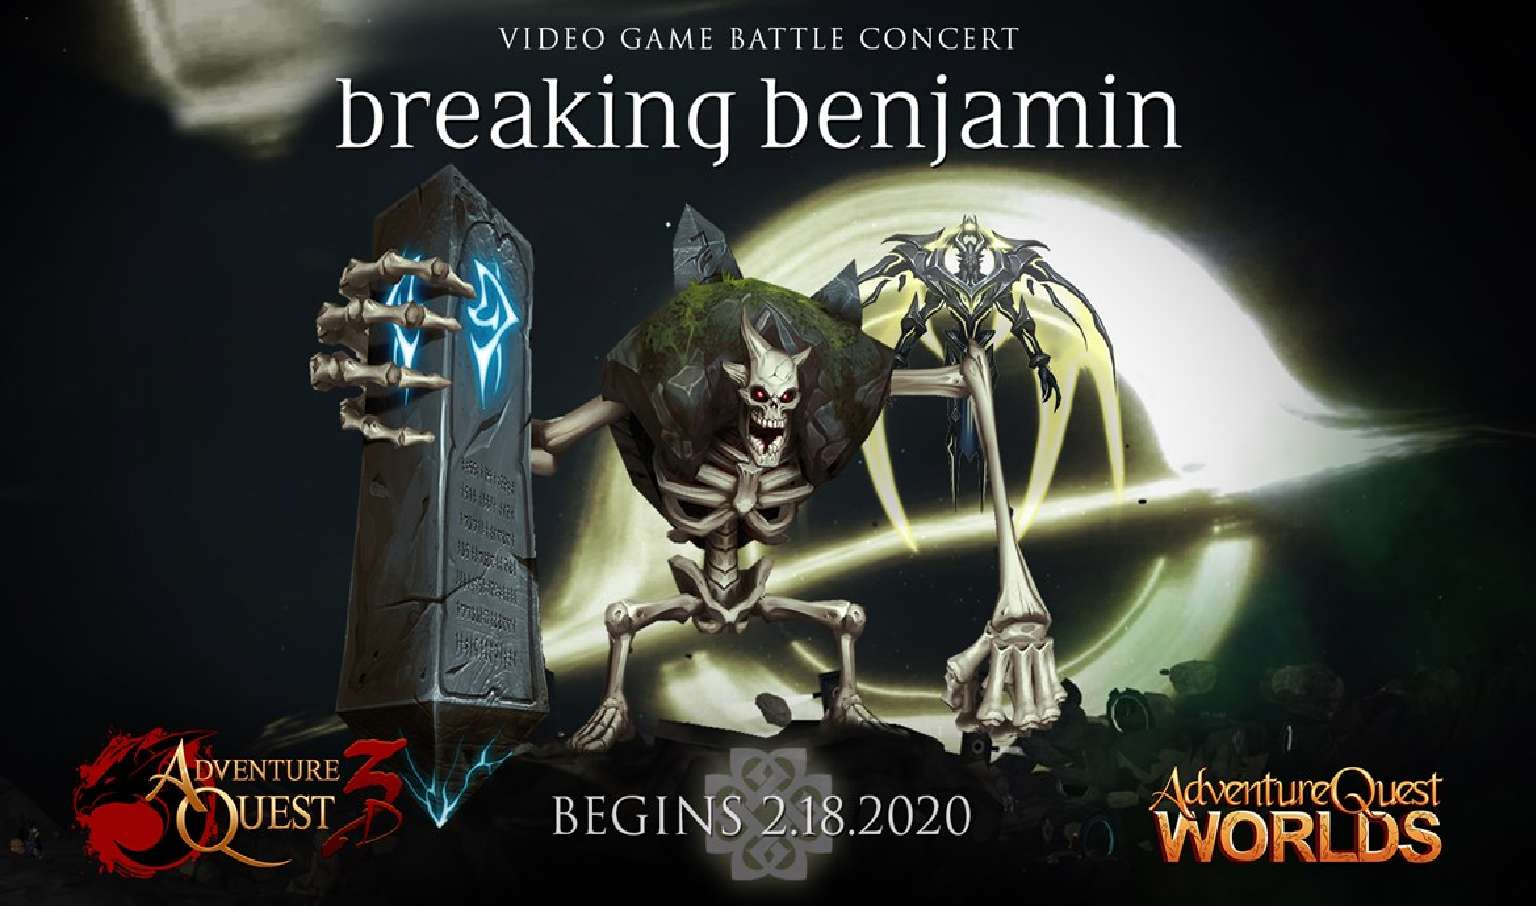 AdventureQuest Worlds And 3D Plan Breaking Benjamin Battle Concert To Coincide With A New Album